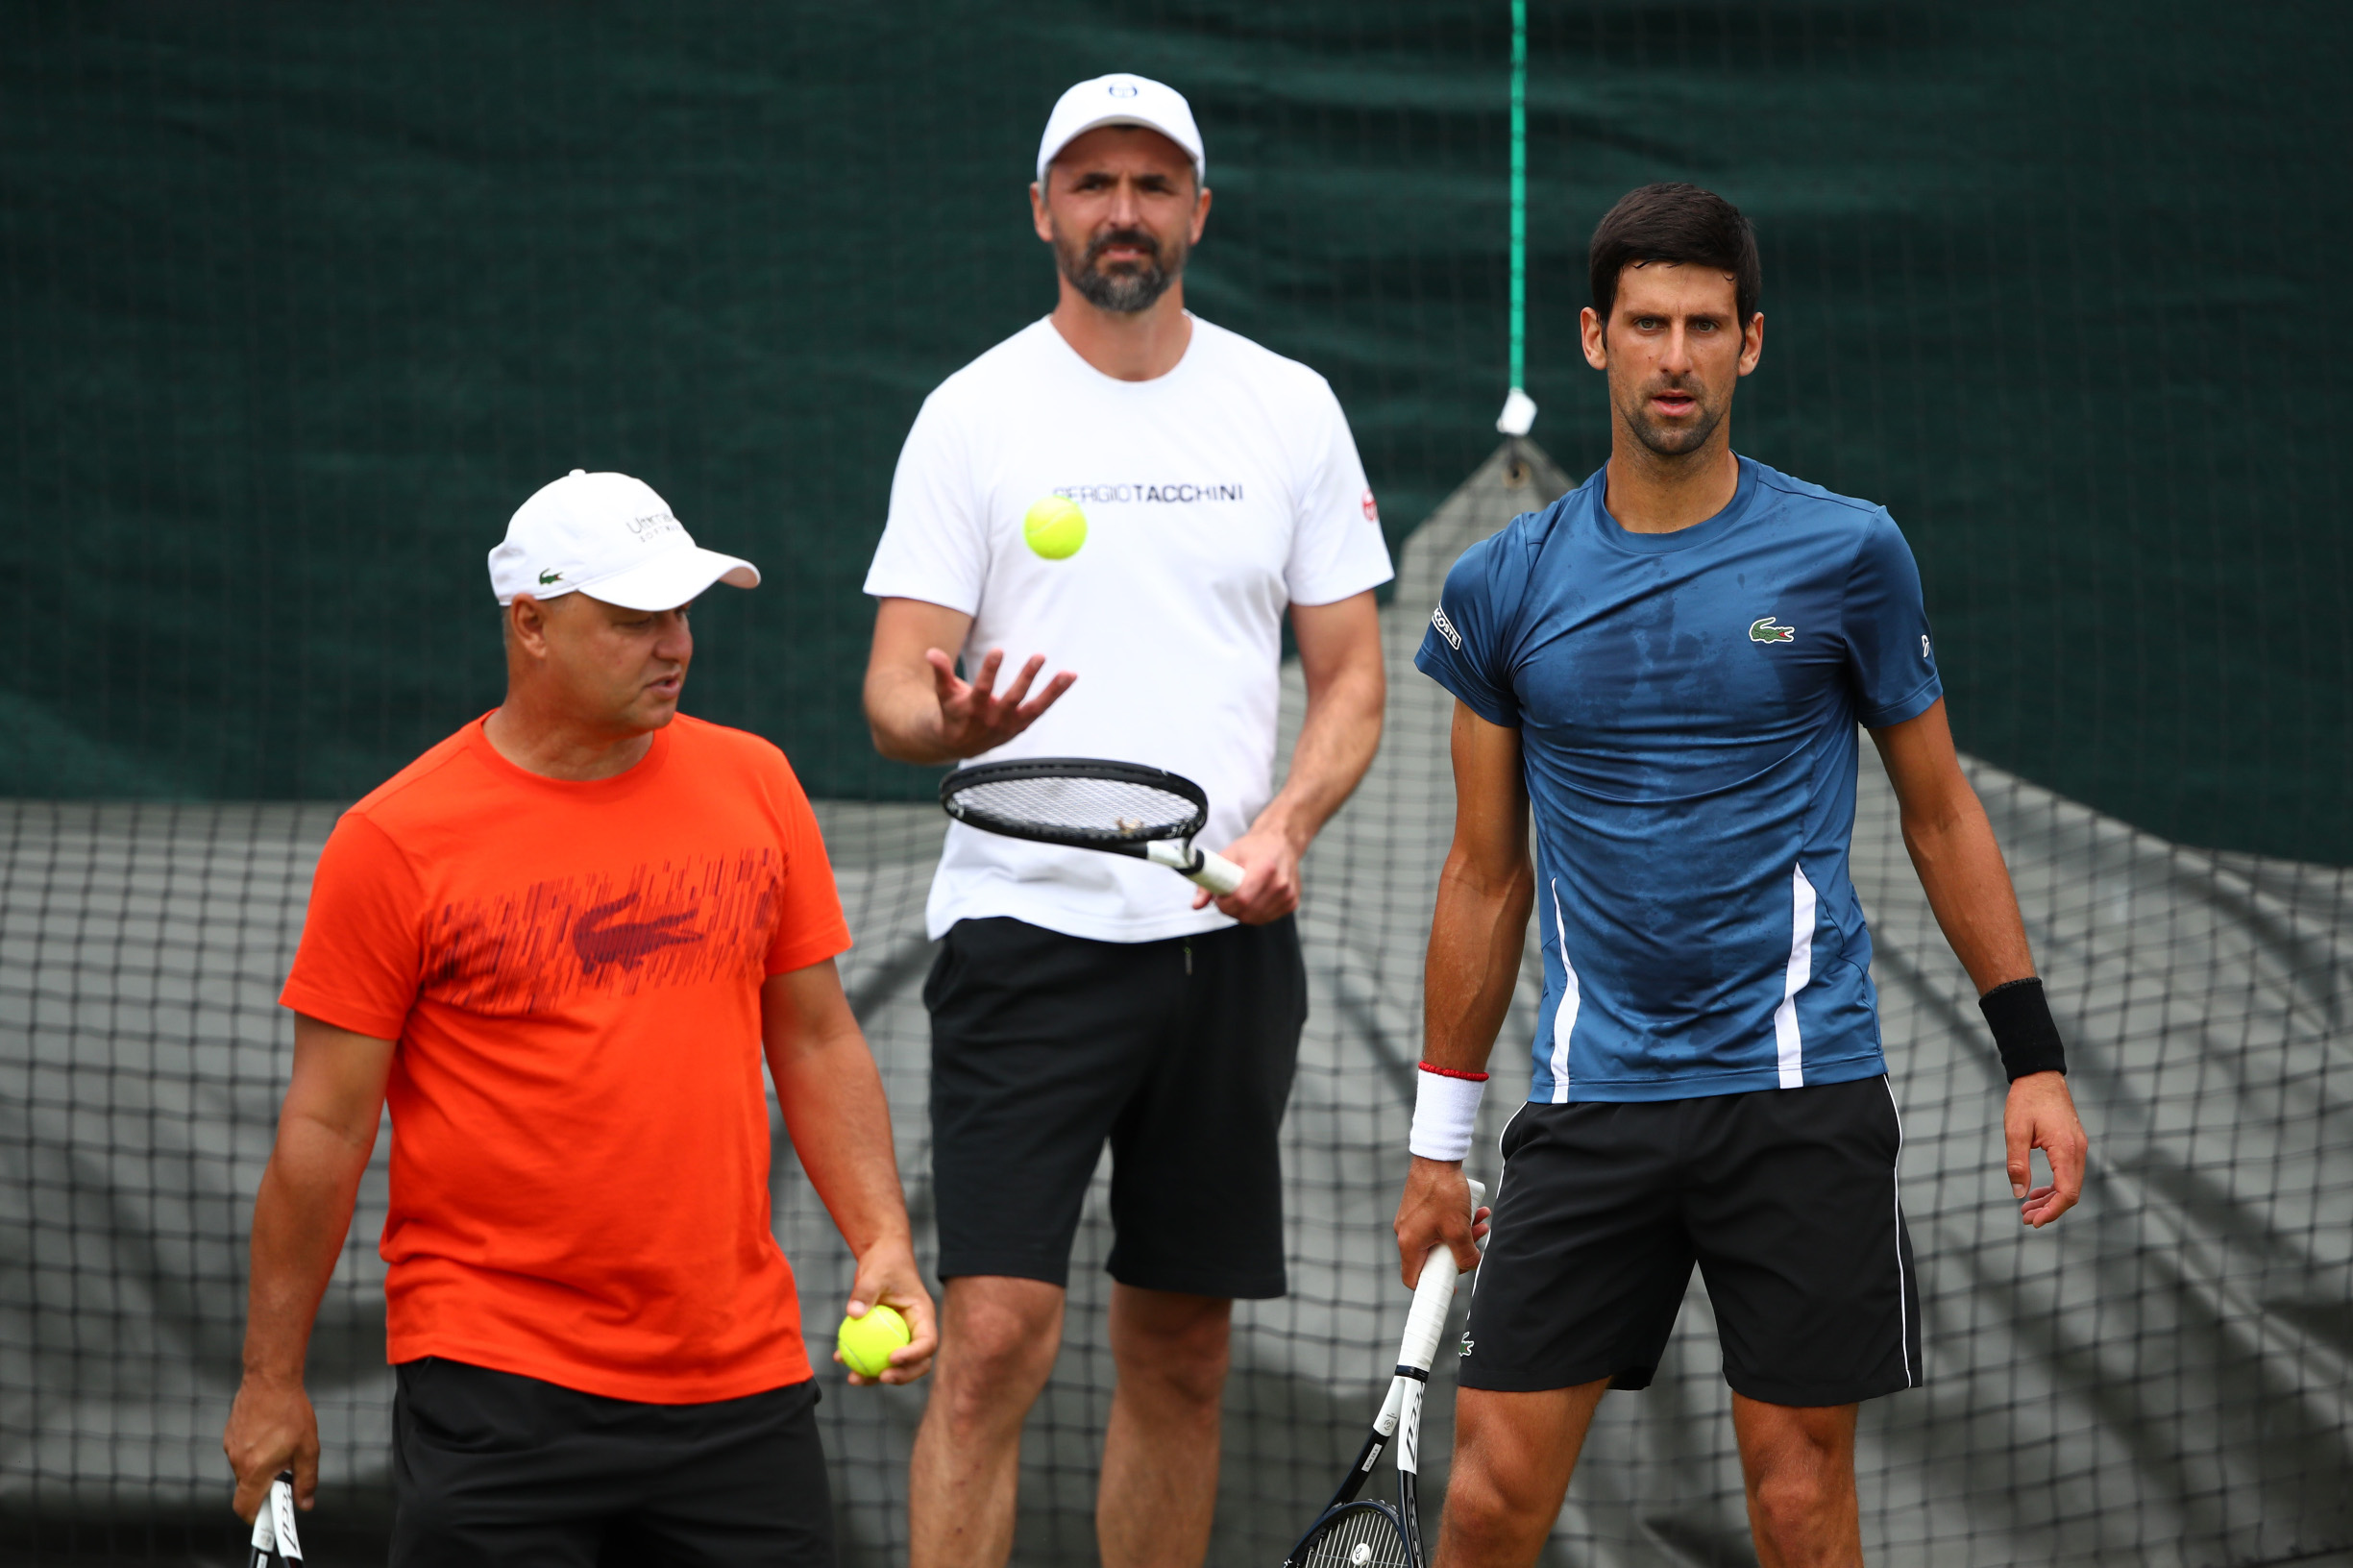 LONDON, ENGLAND - JUNE 30: (L-R) Marian Vajda, Goran Ivanisevic and Novak Djokovic of Serbia look on during a practice session ahead of The Championships - Wimbledon 2019 at All England Lawn Tennis and Croquet Club on June 30, 2019 in London, England. (Photo by Clive Brunskill/Getty Images)